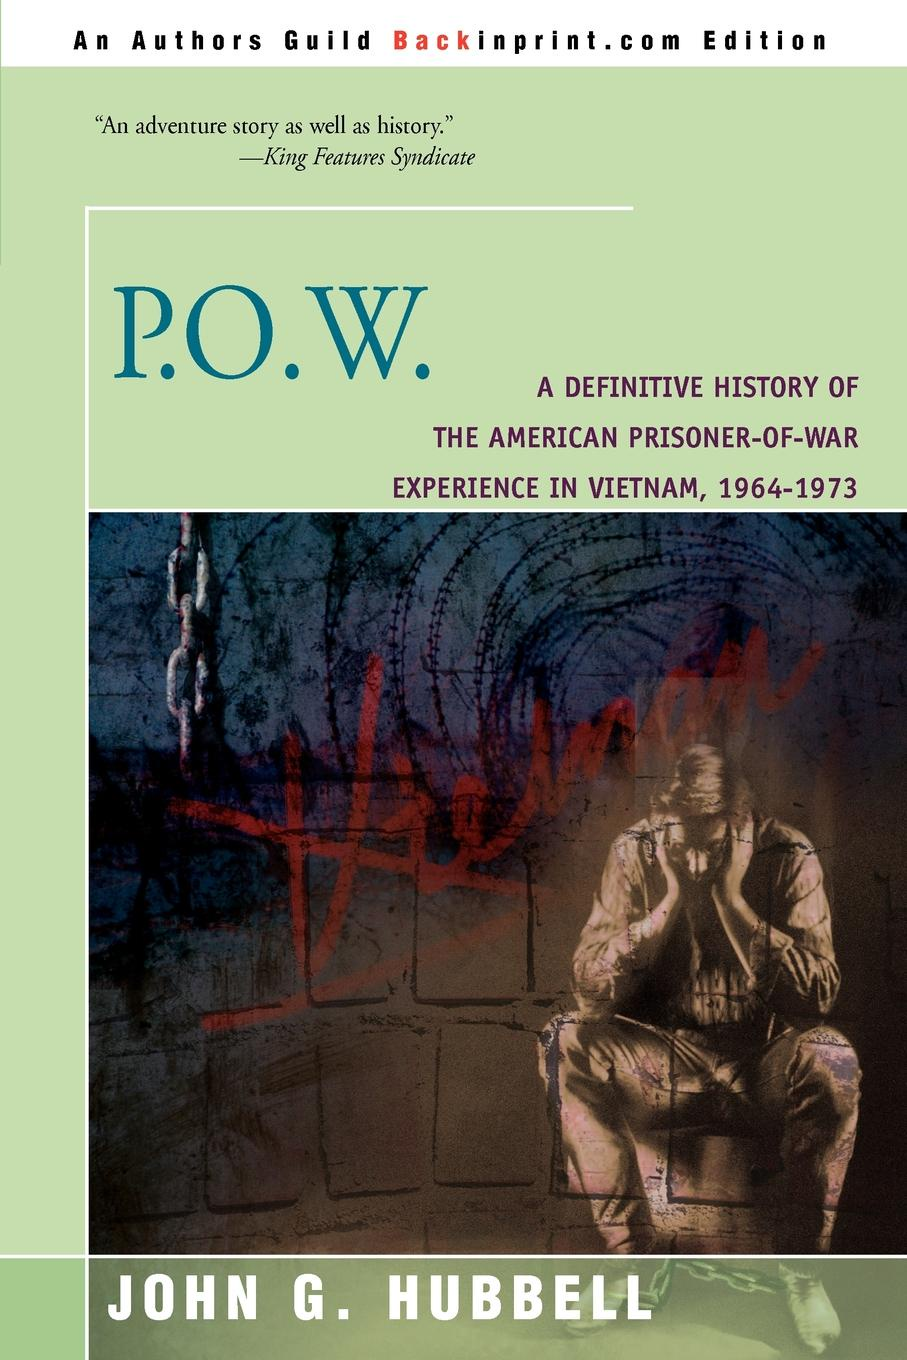 John G. Hubbell P.O.W. A Definitive History of the American Prisoner-Of-War Experience in Vietnam, 1964-1973